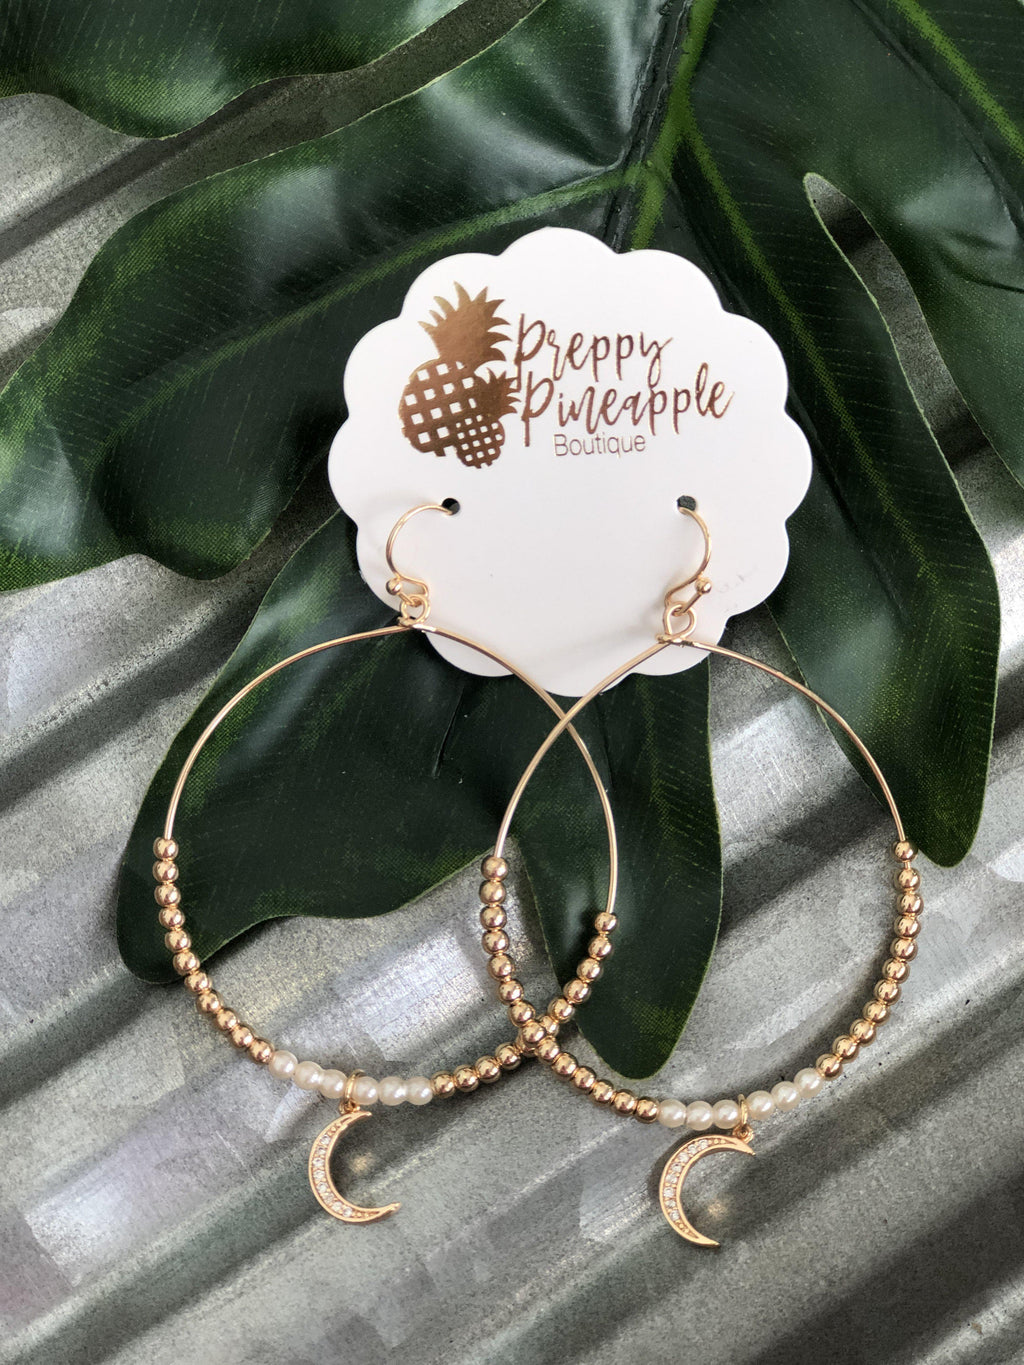 Polly Earrings - Preppy Pineapple